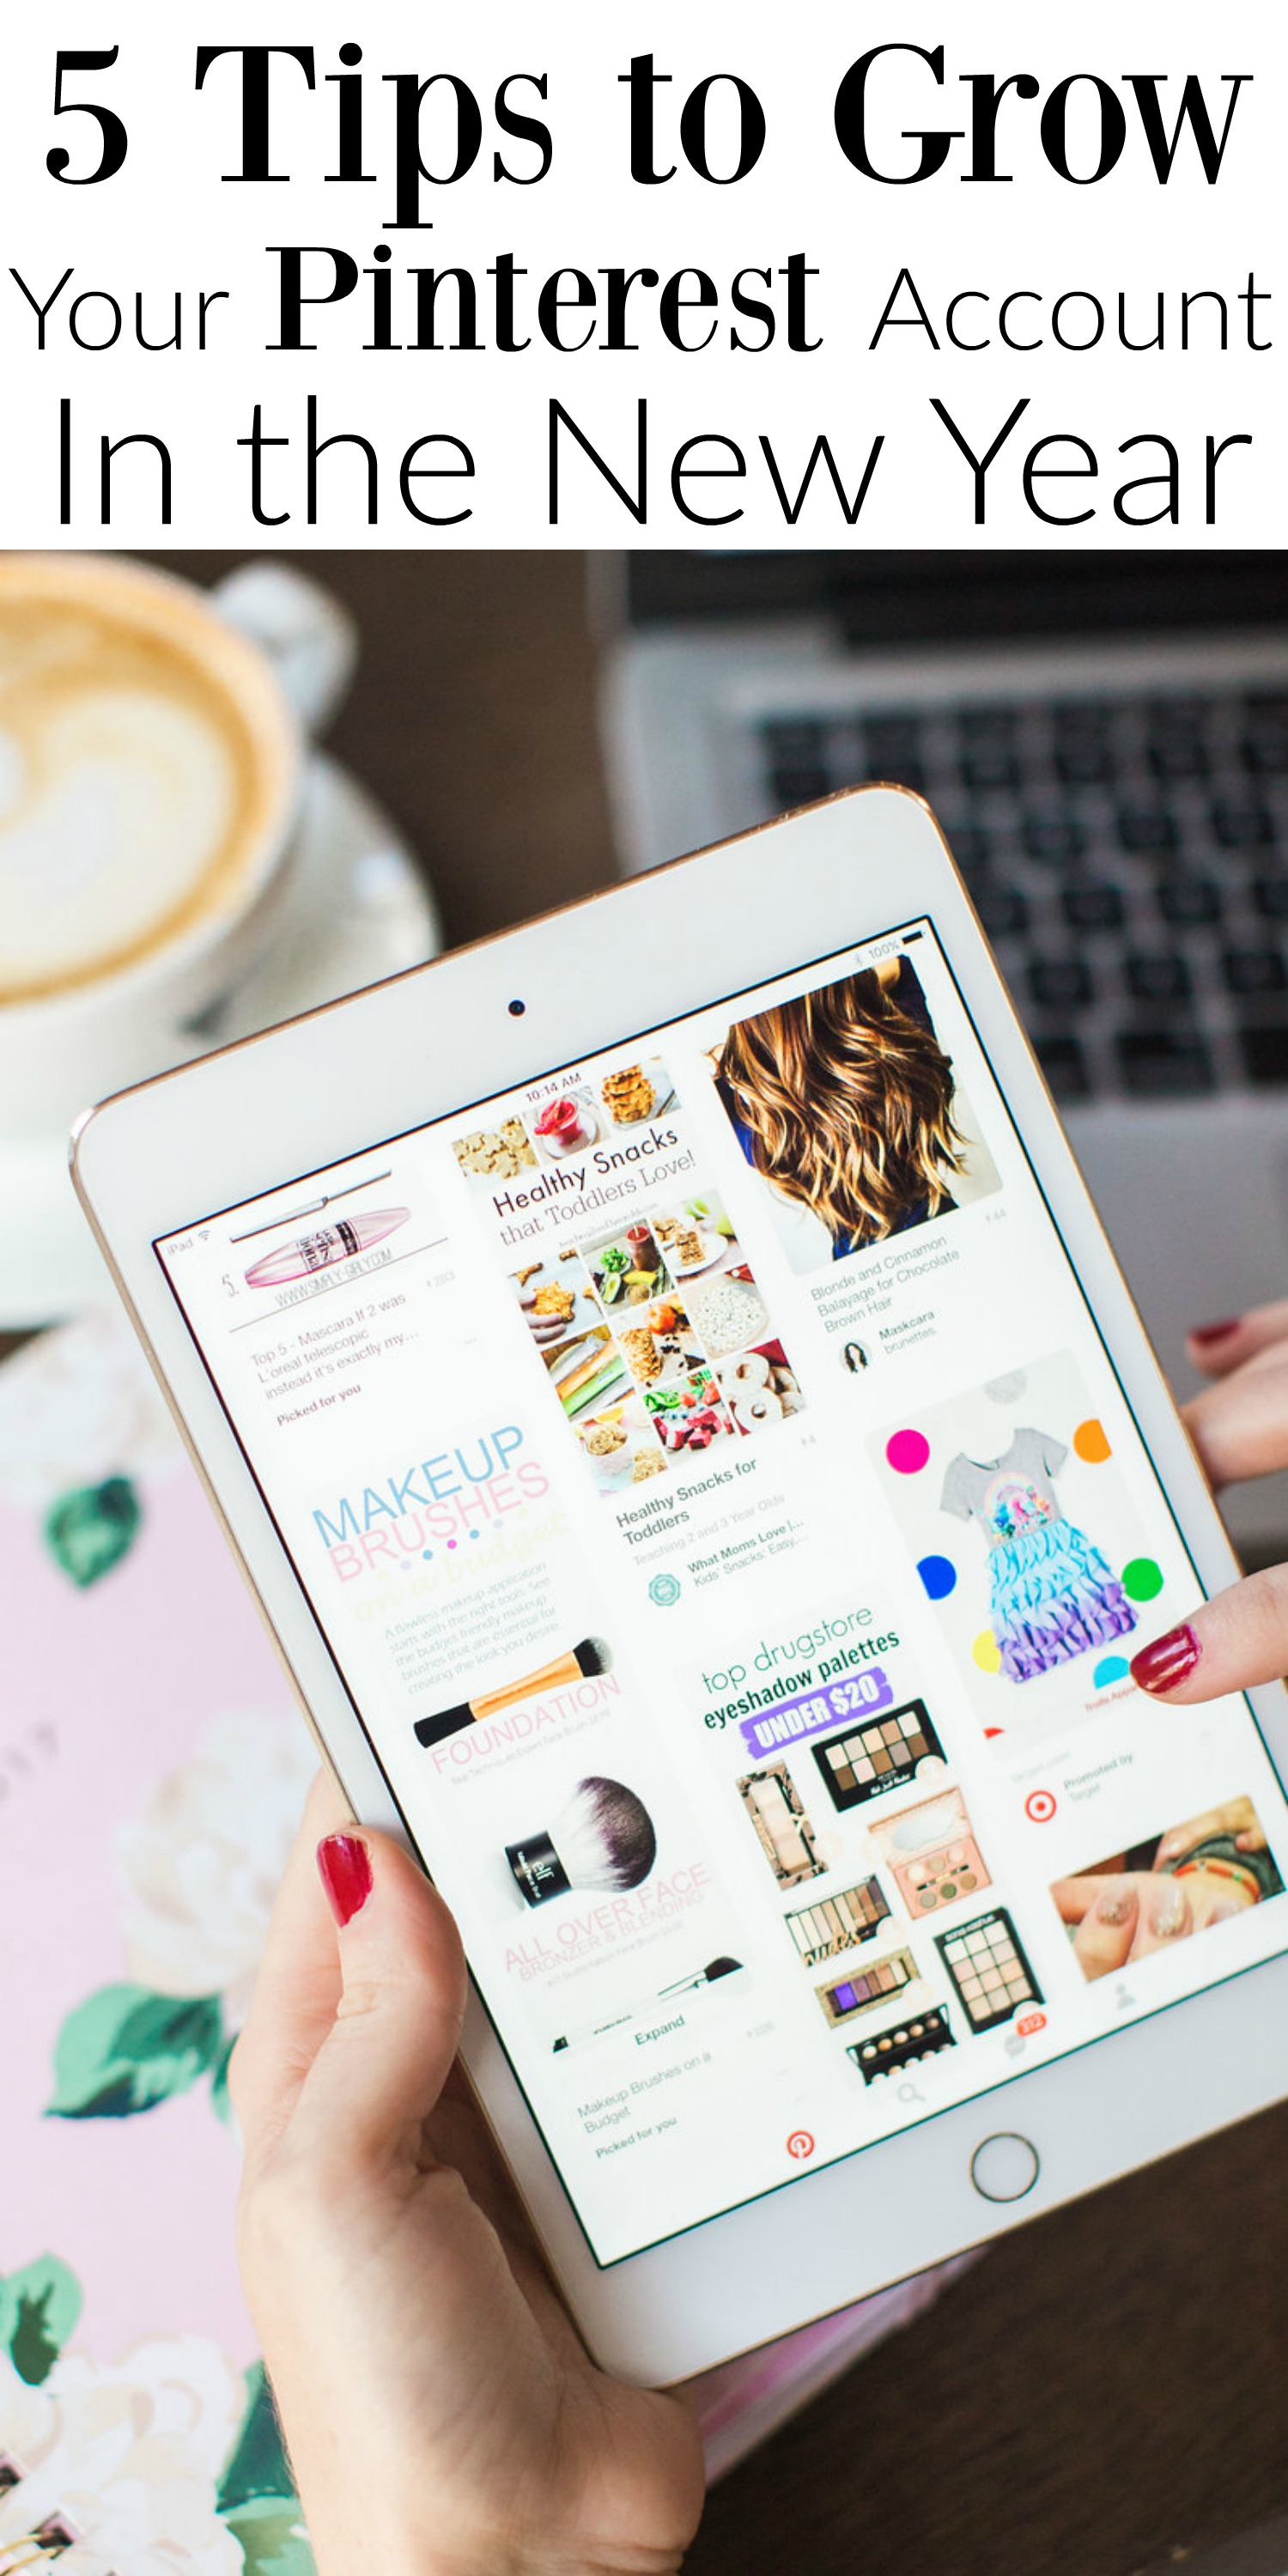 5 Tips to Grown Your Pinterest Account in the New Year